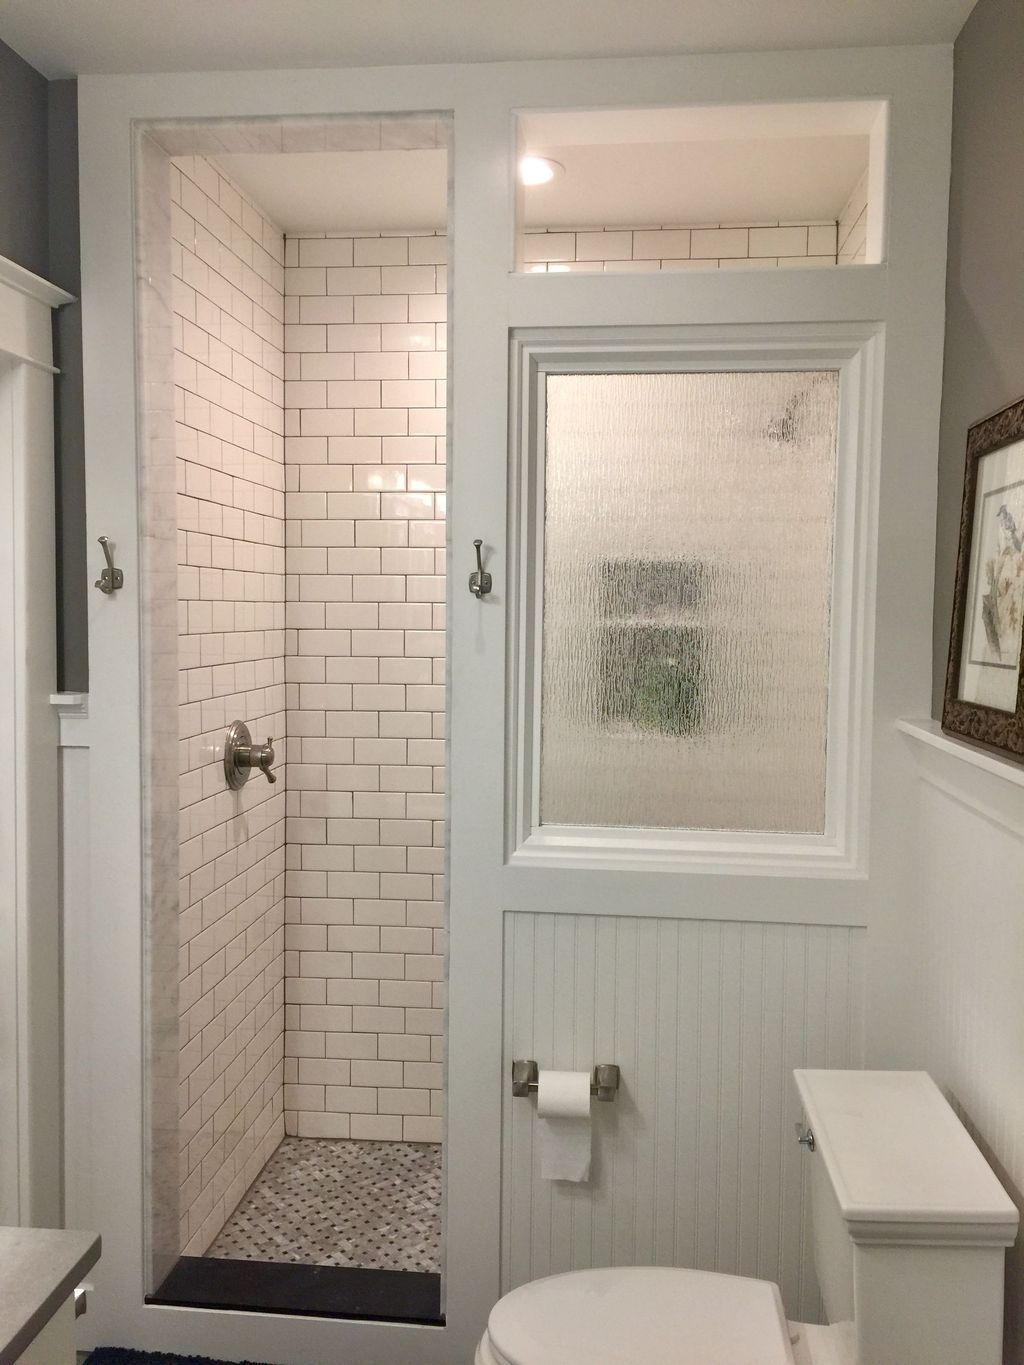 41 Easy Shower Design Ideas For Small Bathroom Inexpensive